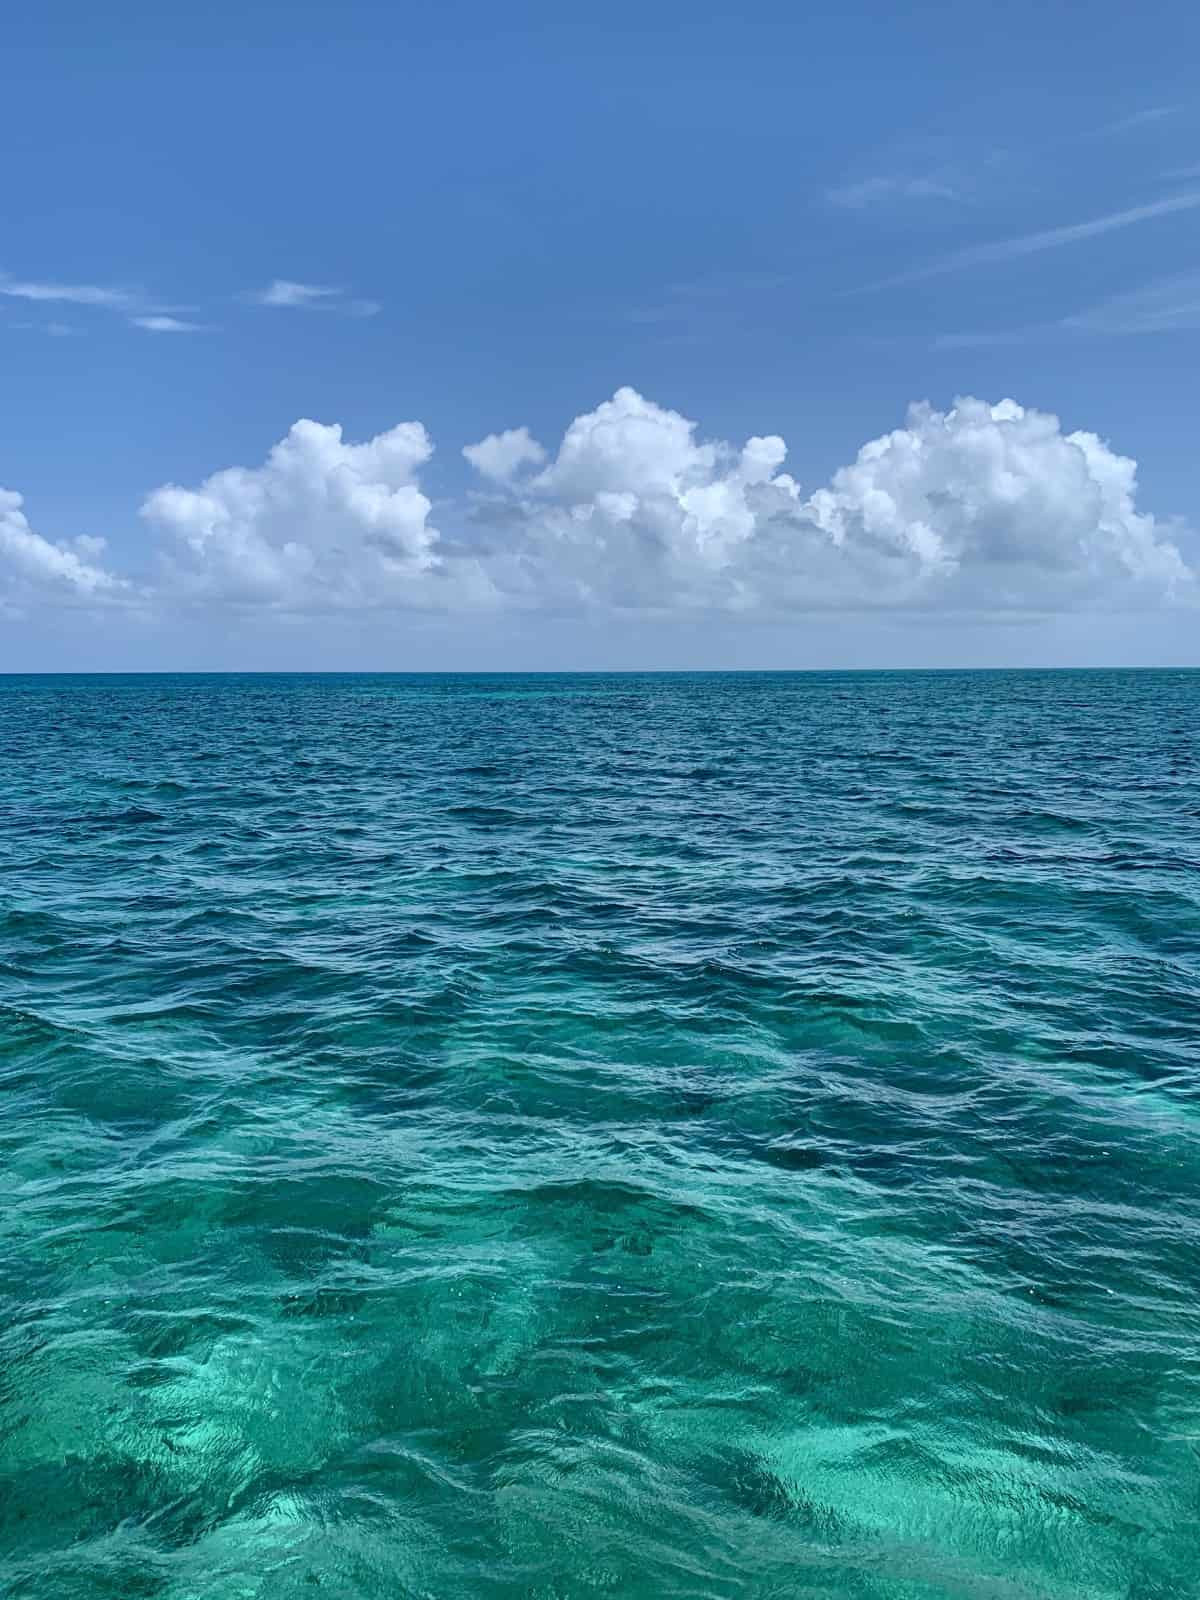 What it Was Like Open-Water Sailing Key West to Dry Tortugas | Ever wondered what a multi-day sailing trip on the open water is like? I did a 5-day trip from Key West to Dry Tortugas National Park and back...absolutely loved it, but not without its challenges. Here is my experience & some amazing pics!